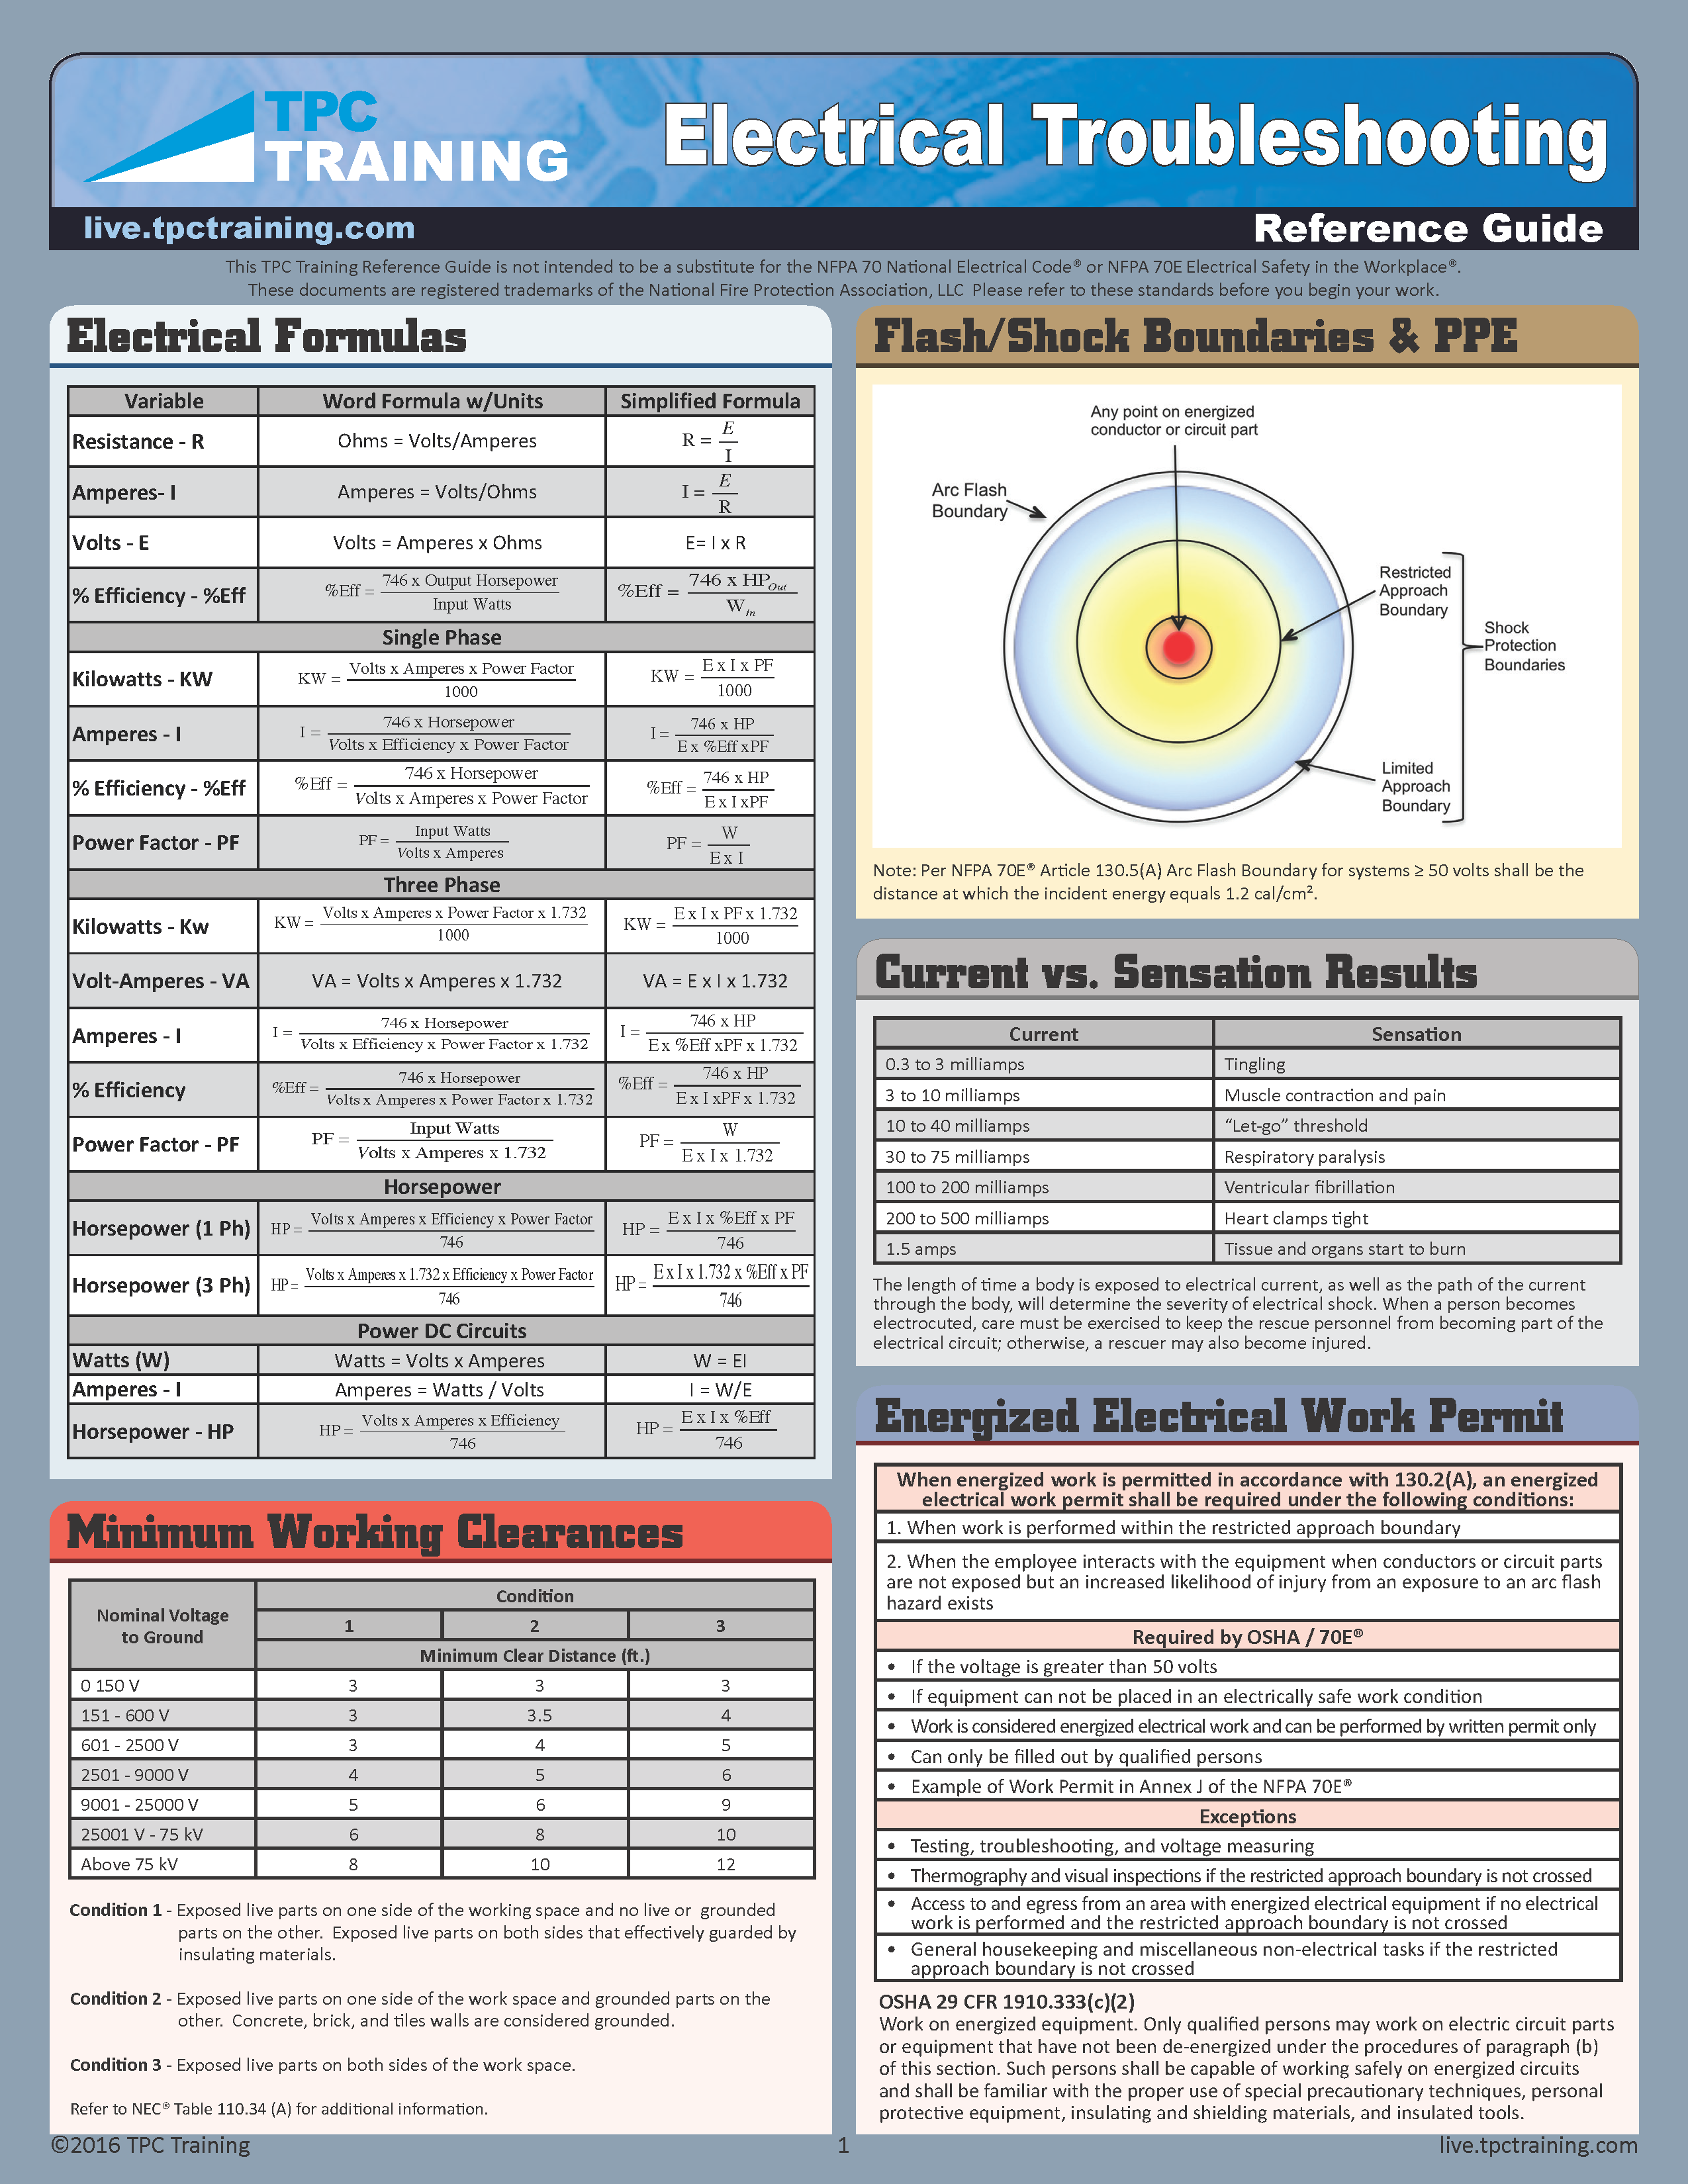 Electrical Troubleshooting Reference Guide